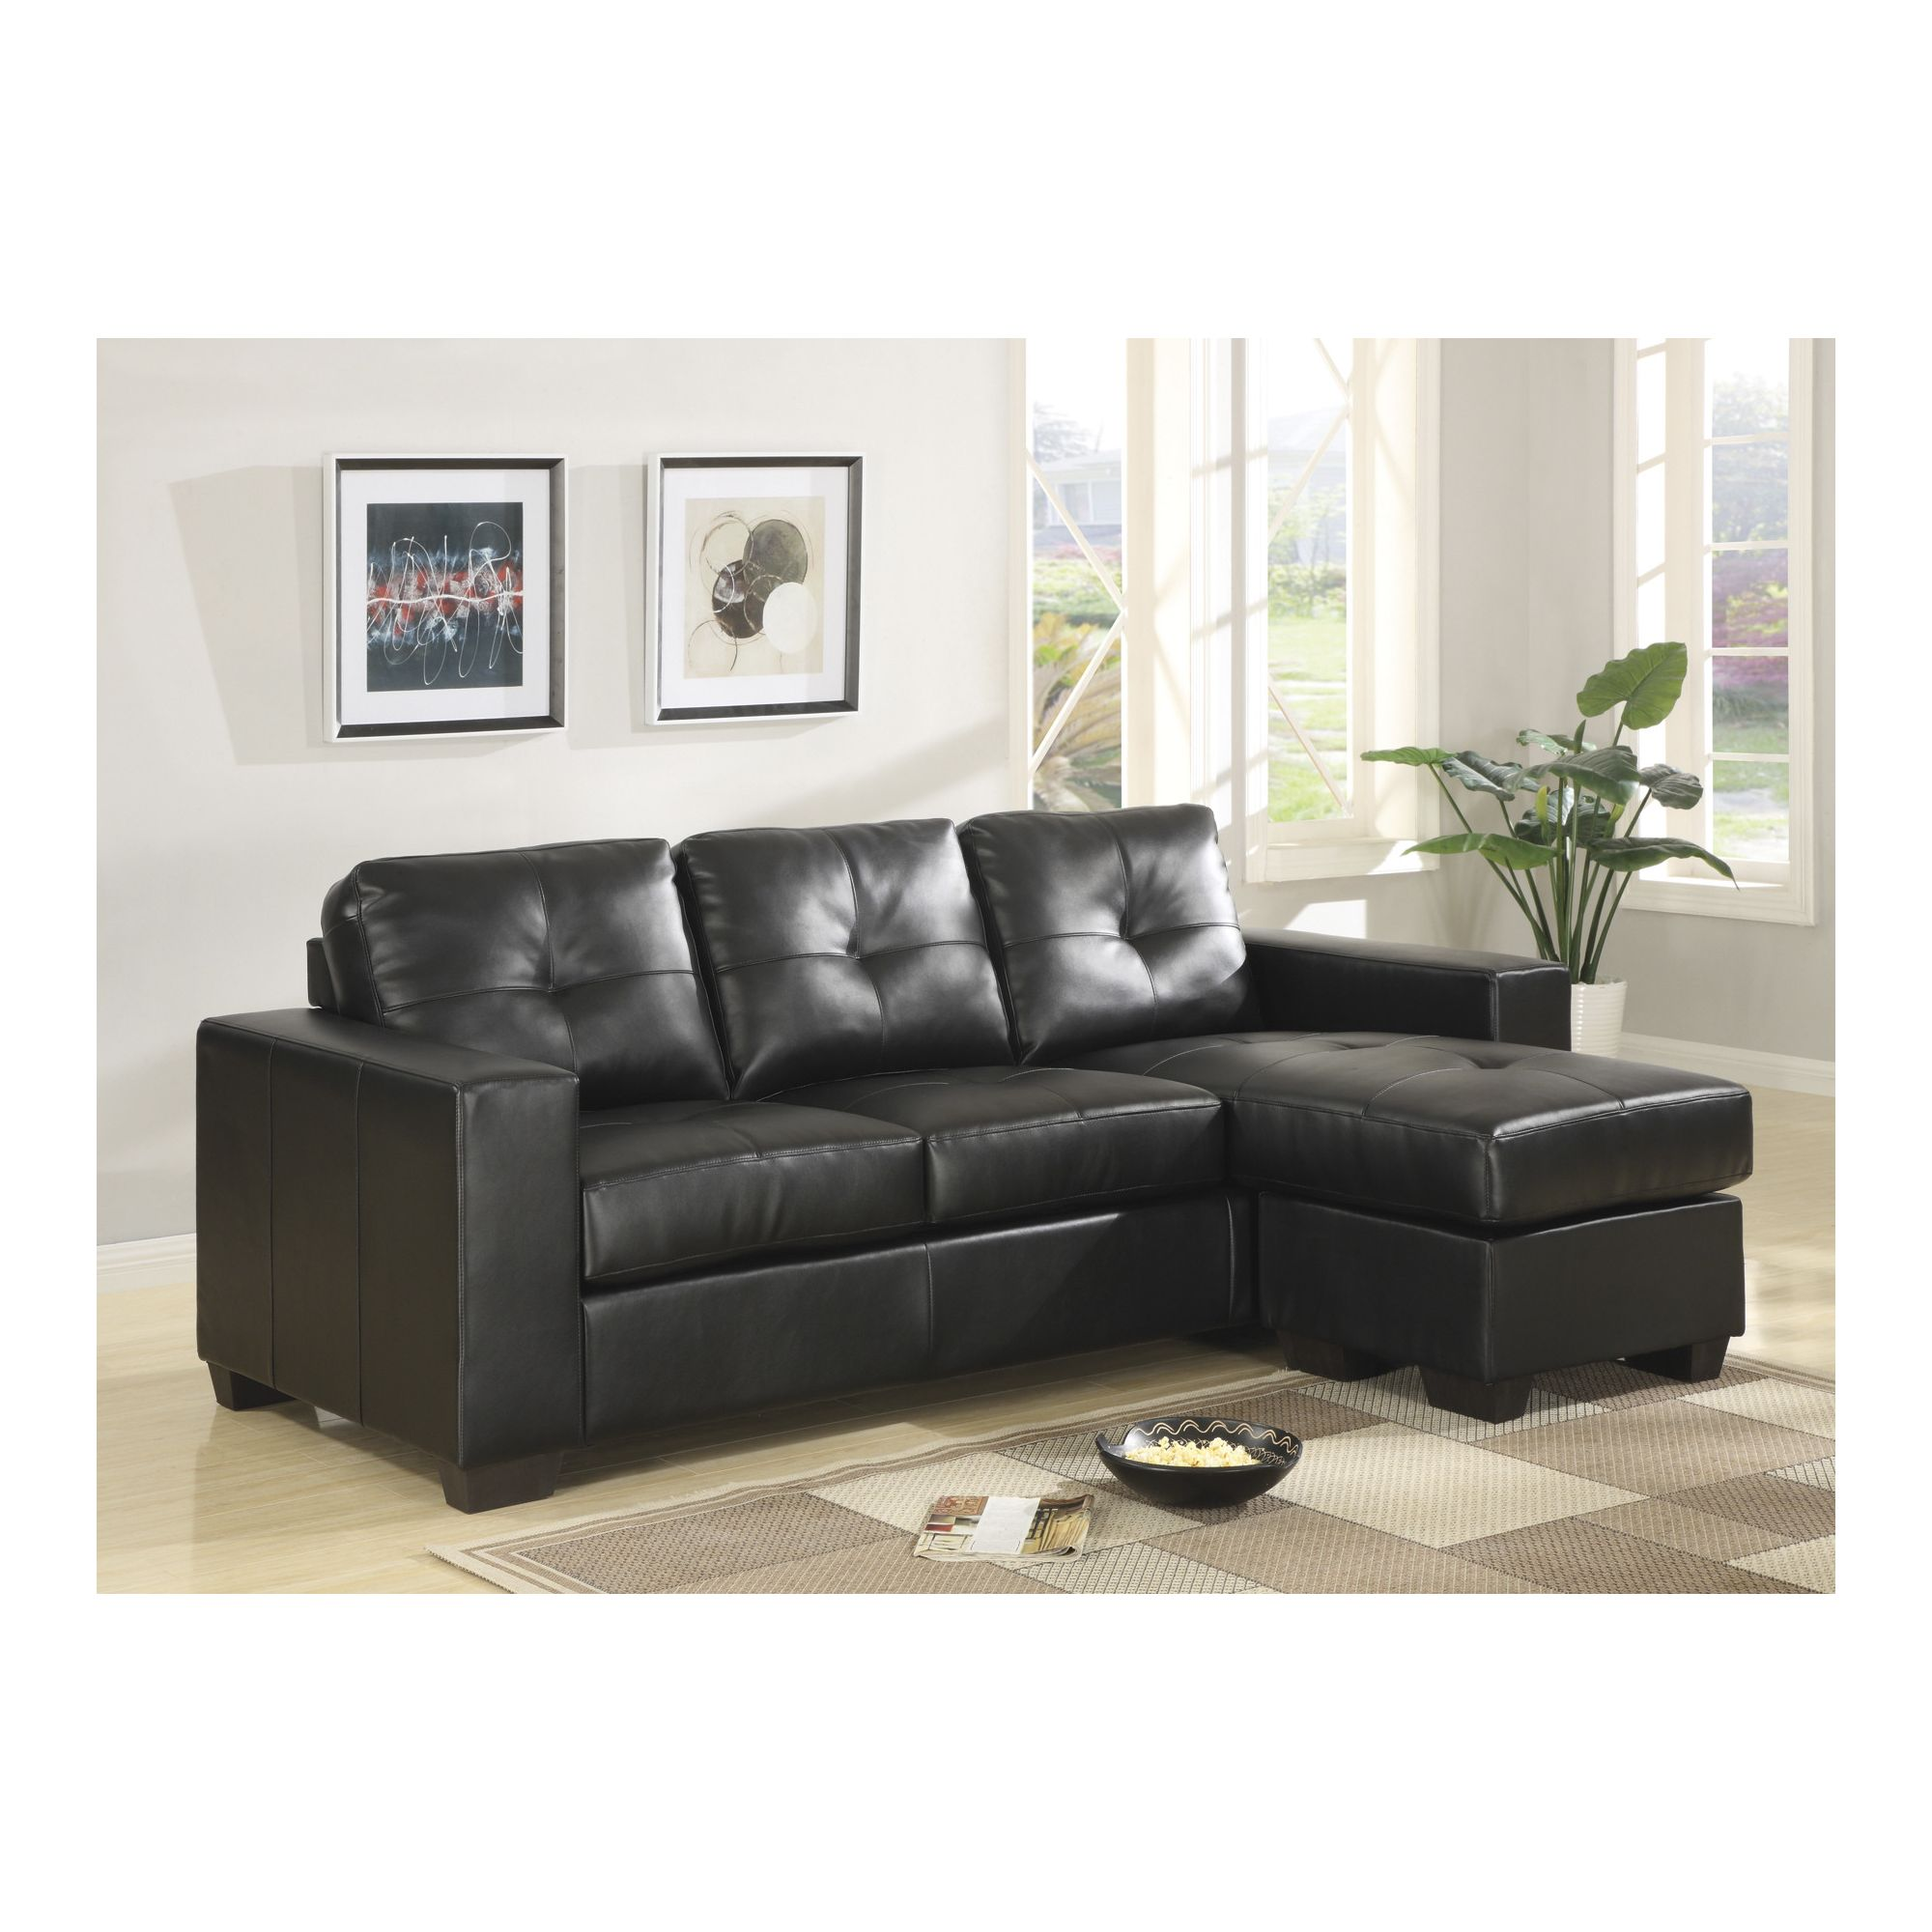 Furniture Link Gemona L Sofa in Black at Tesco Direct